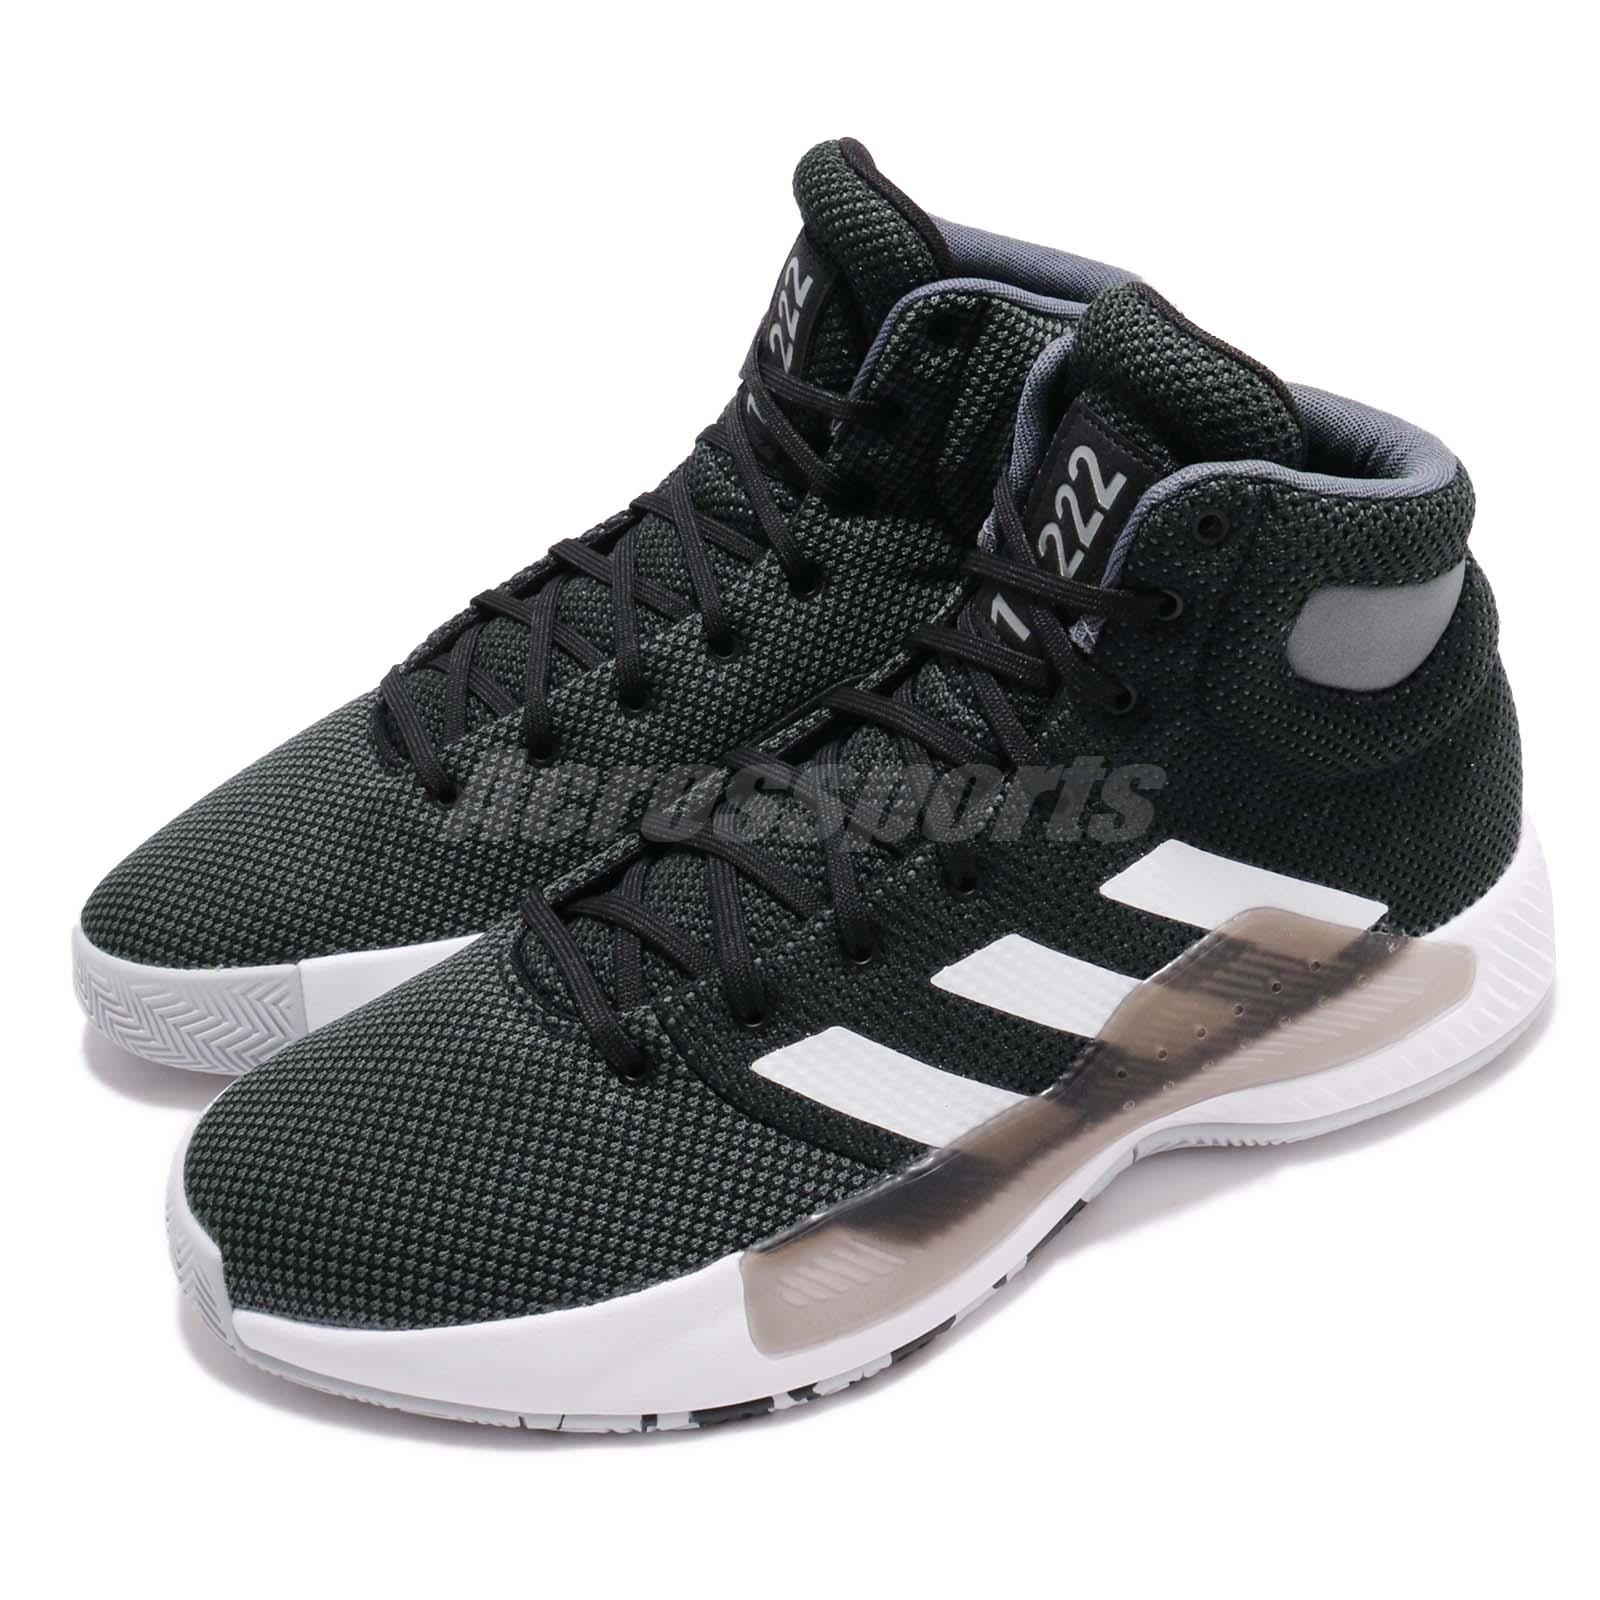 5e162736e Details about adidas Pro Bounce Madness 2019 Black White Grey Men  Basketball Shoes BB9239